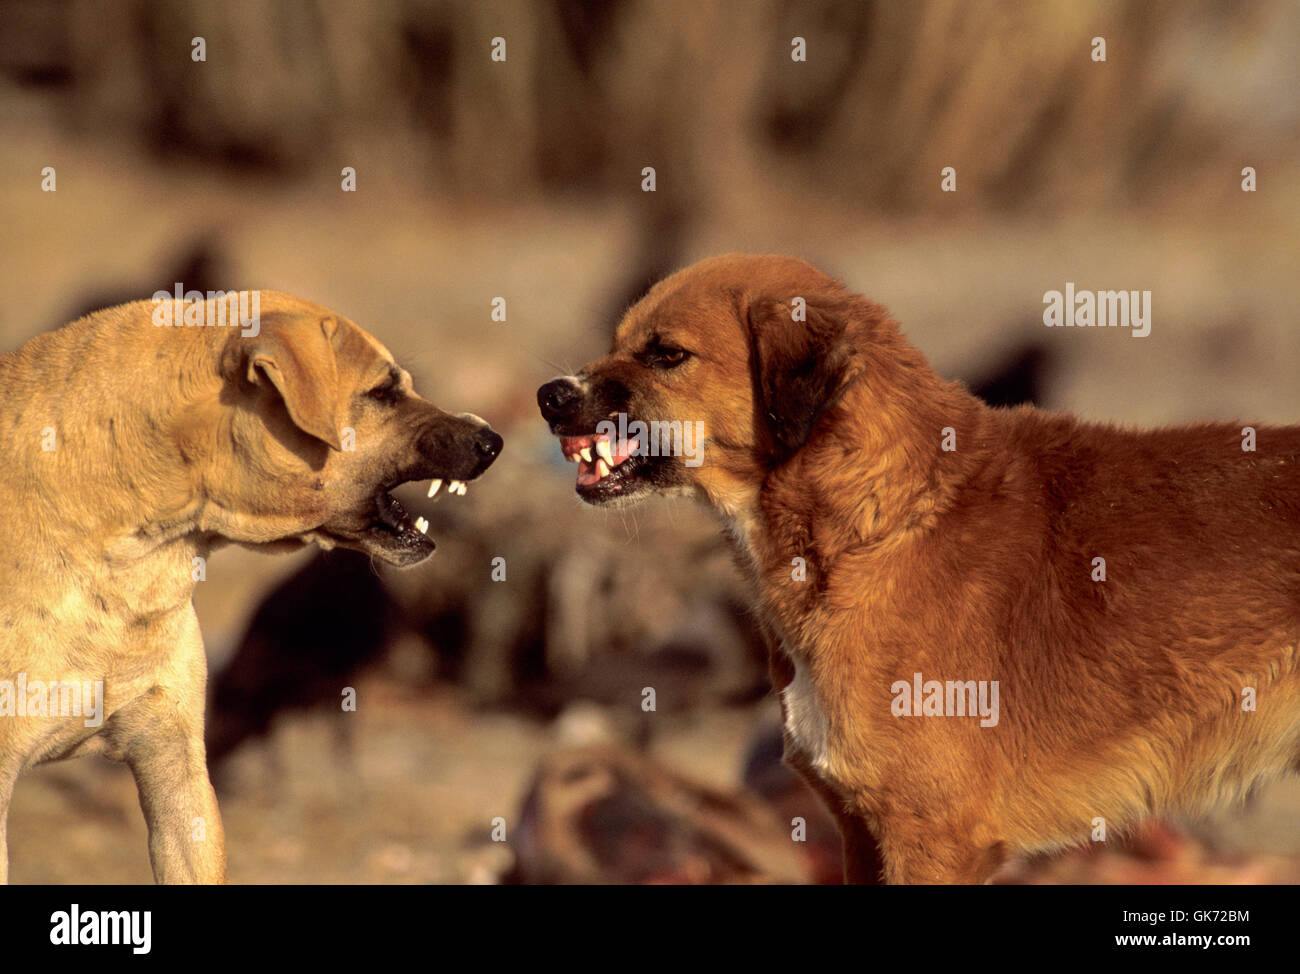 Feral dogs fighting on animal waste dump, (since vulture decline feral dog population has increased across India), - Stock Image